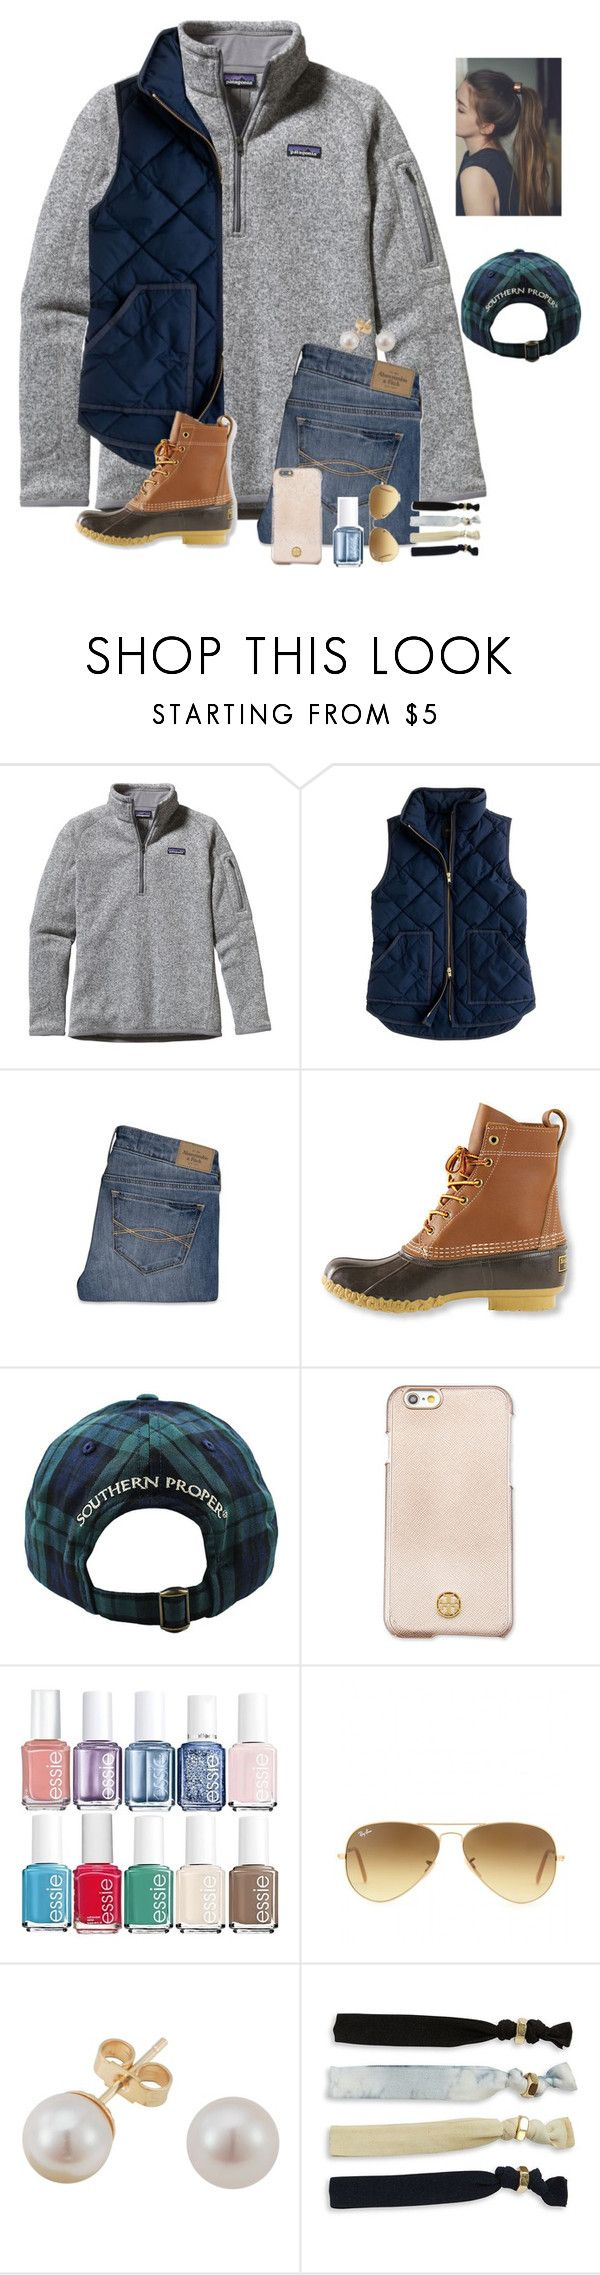 """""""Question of the day #18"""" by raquate1232 ❤ liked on Polyvore featuring Patagonia, J.Crew, Abercrombie & Fitch, L.L.Bean, Southern Proper, Tory Burch, Essie, Ray-Ban, EWA and Robert Rose"""